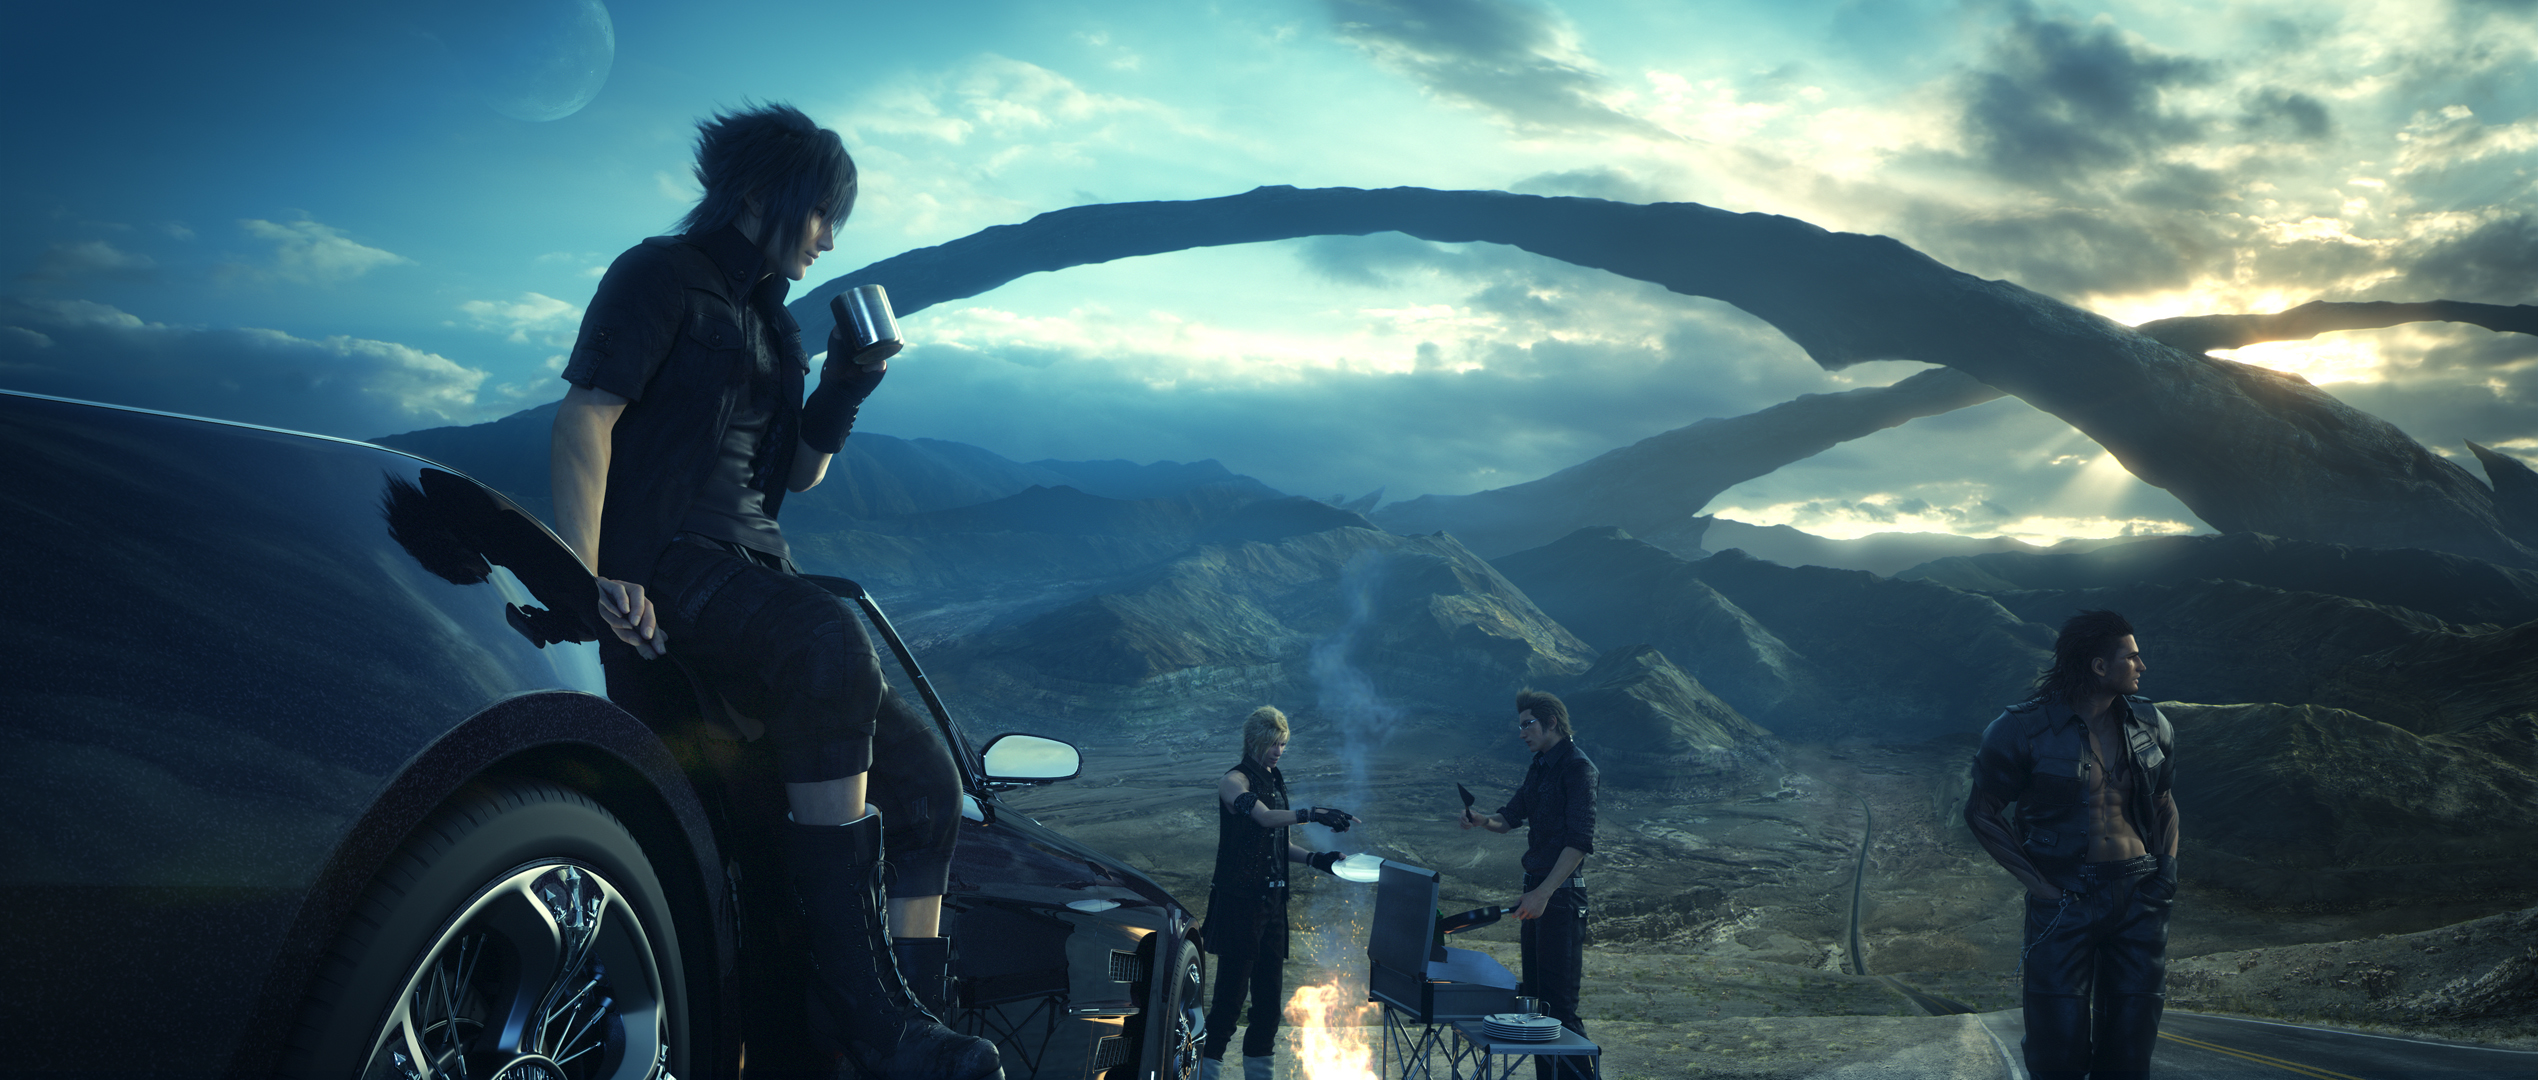 Final Fantasy Xv Wallpapers In Ultra Hd: 60 Final Fantasy XV HD Wallpapers